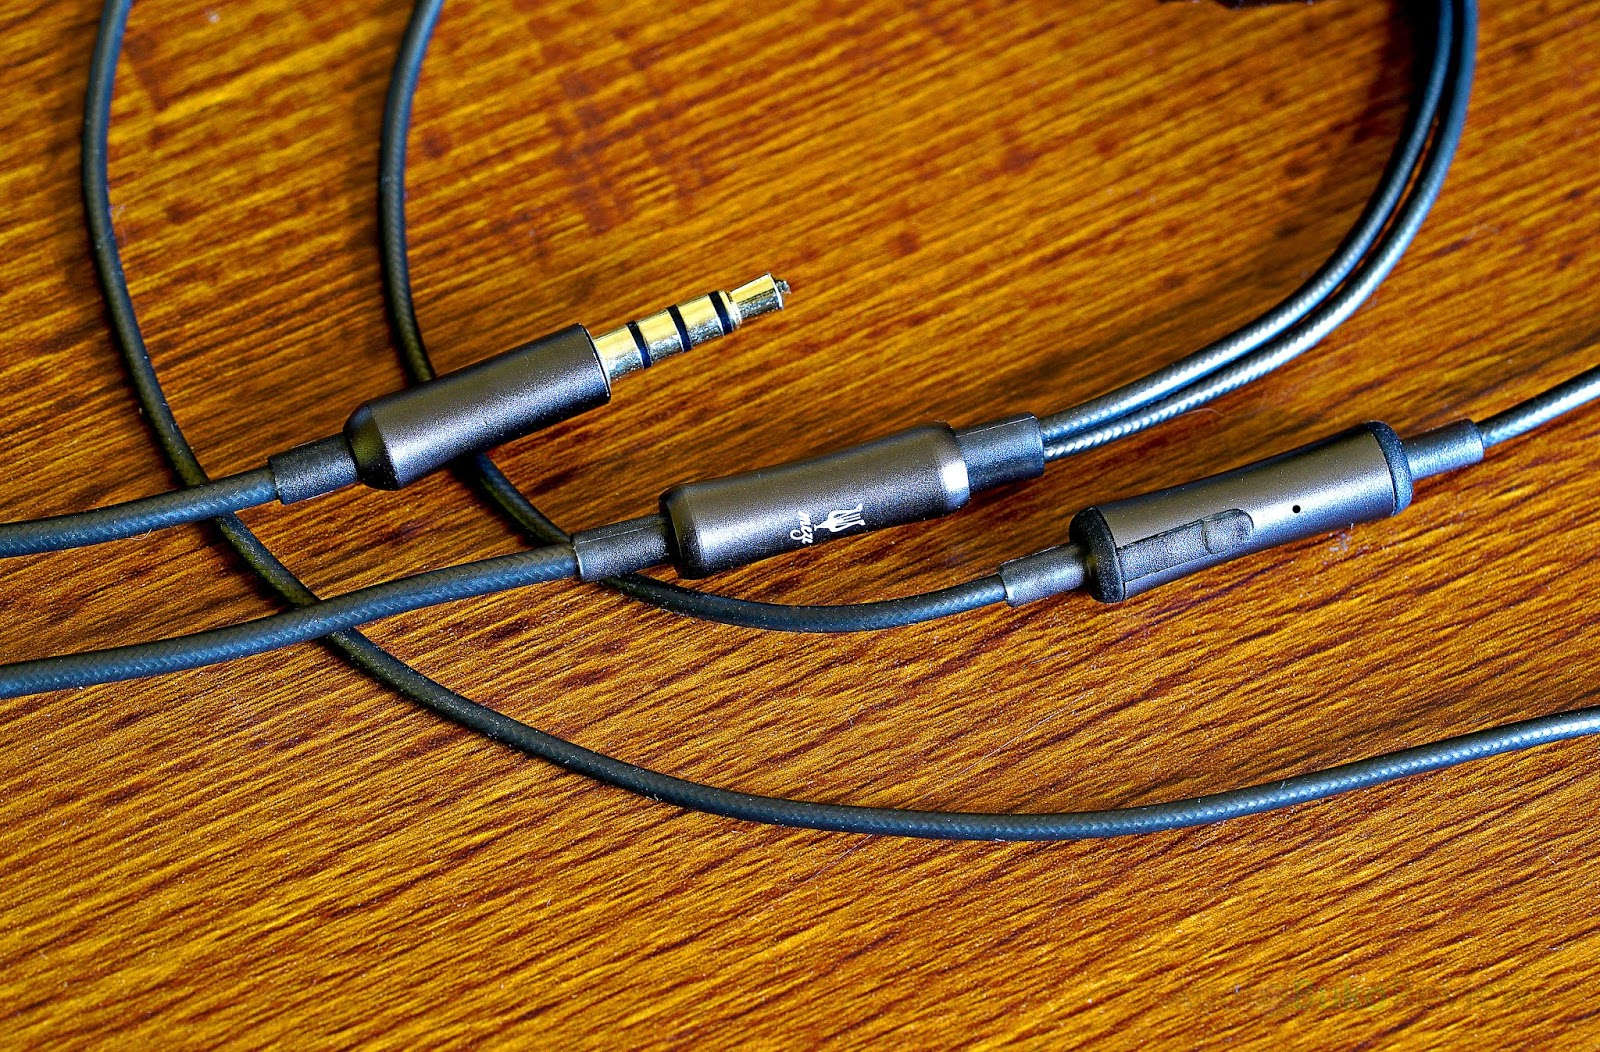 Meze 12 Classics Reviews Headphone And Discussion Head Otto Headset Wiring Diagram Cable Build Design The Has A Non Removable That Looks Reinforced For Durability Made Of 7n Oxygen Free Copper Ofc